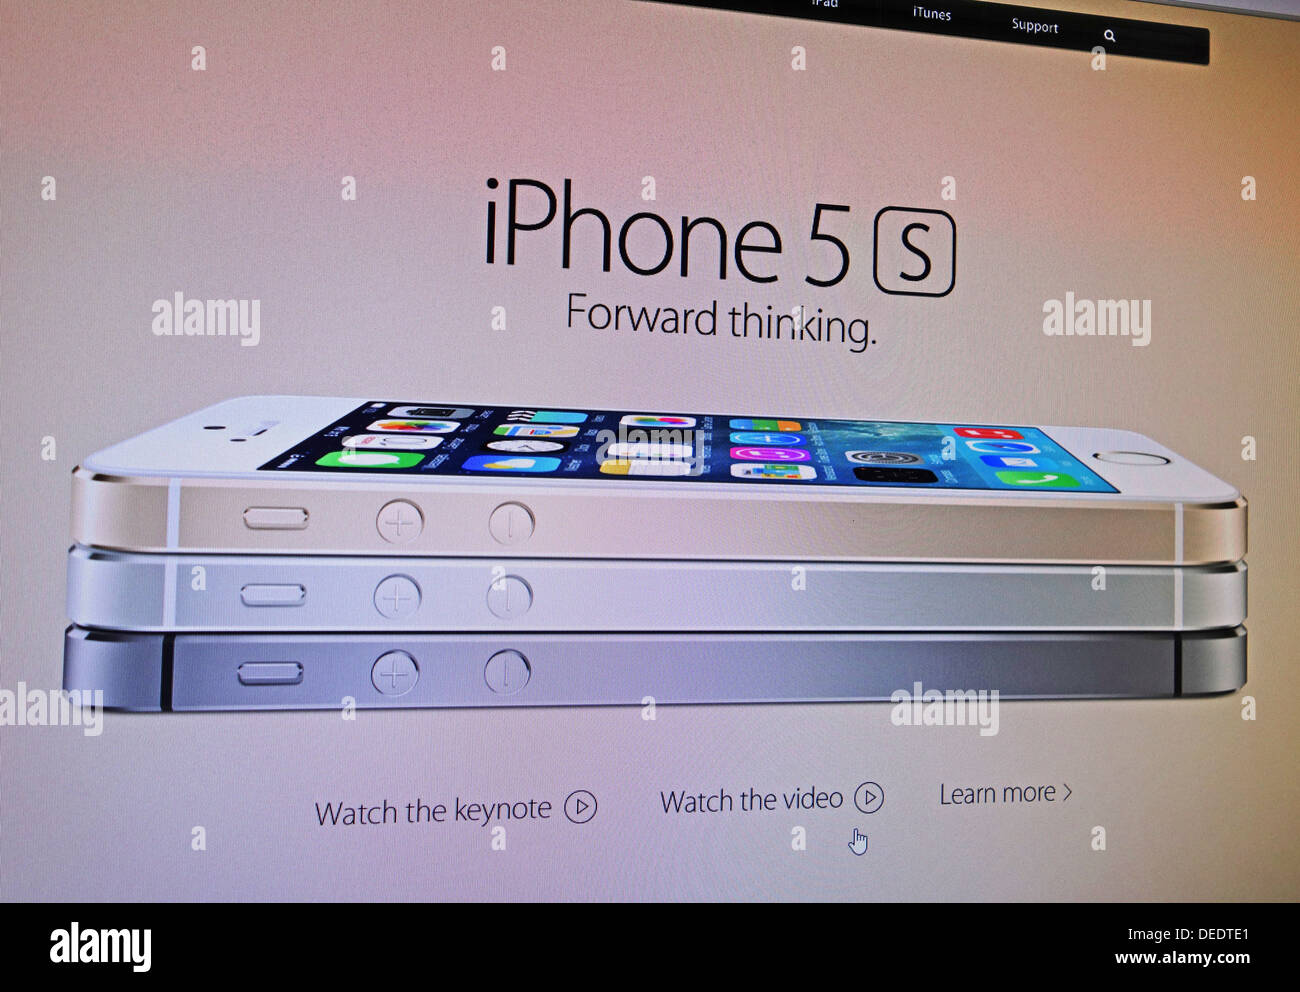 IPhone 5 s Publicité internet Photo Stock